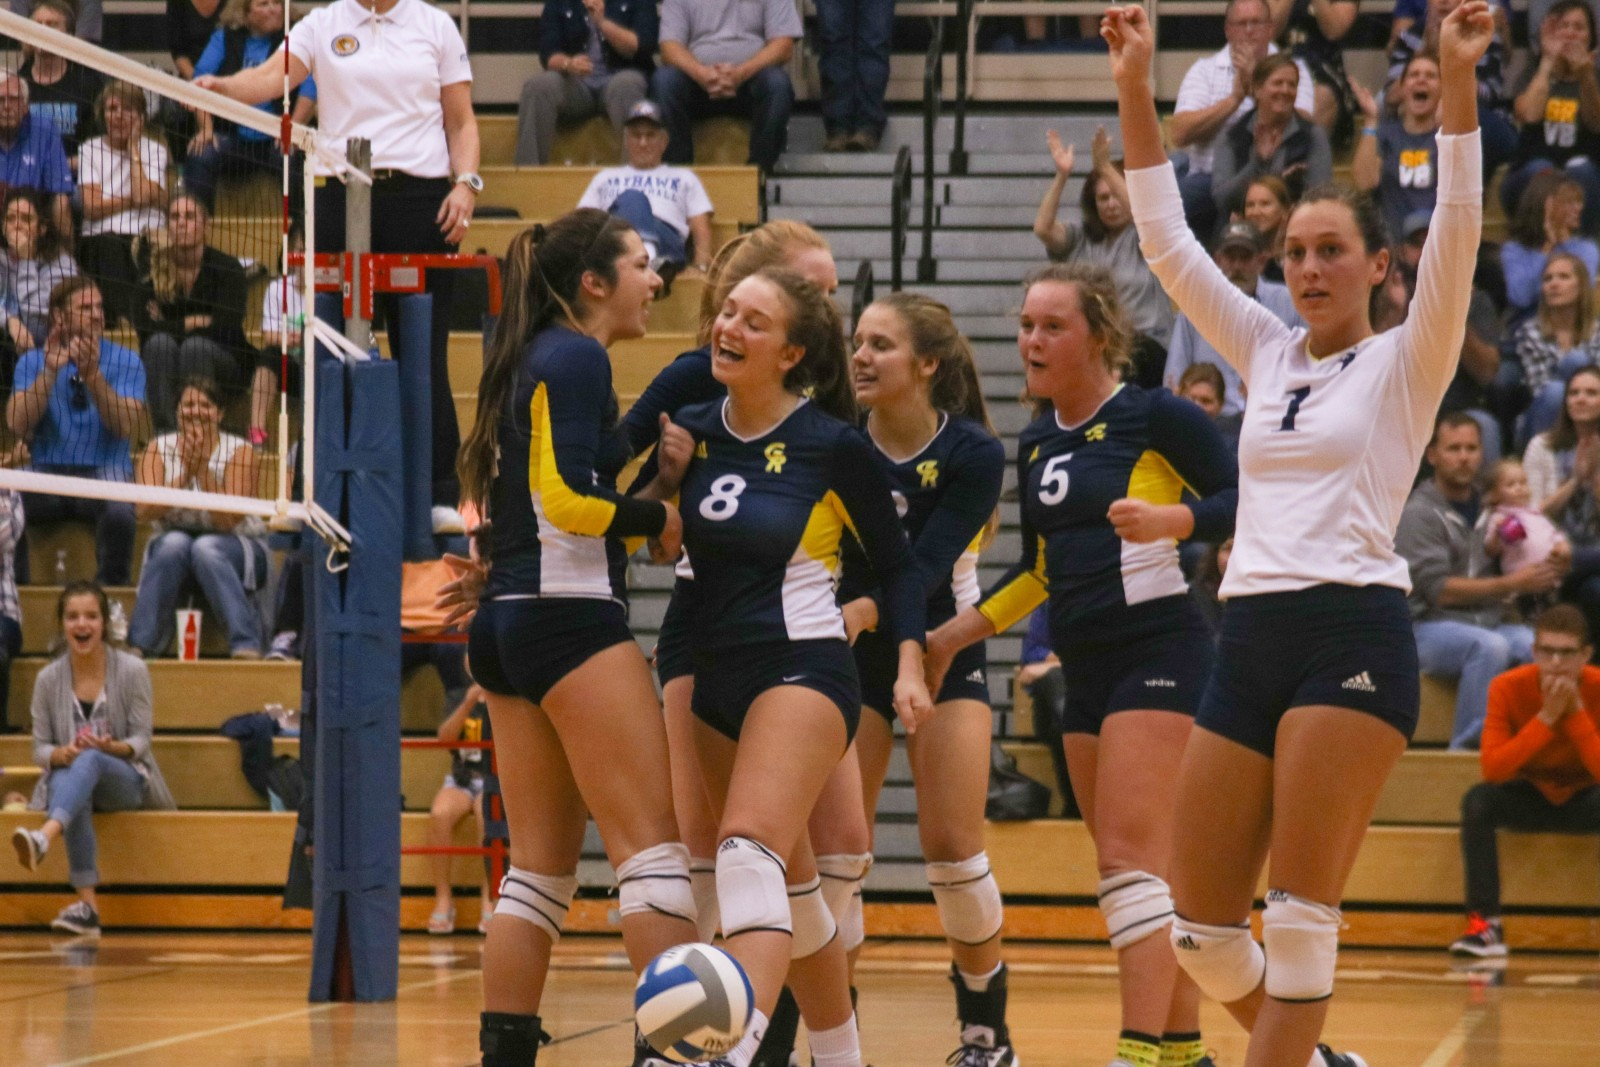 The GRCC volleyball team gets fired up as they score a point against Muskegon CC during the fifth and final set of the night.